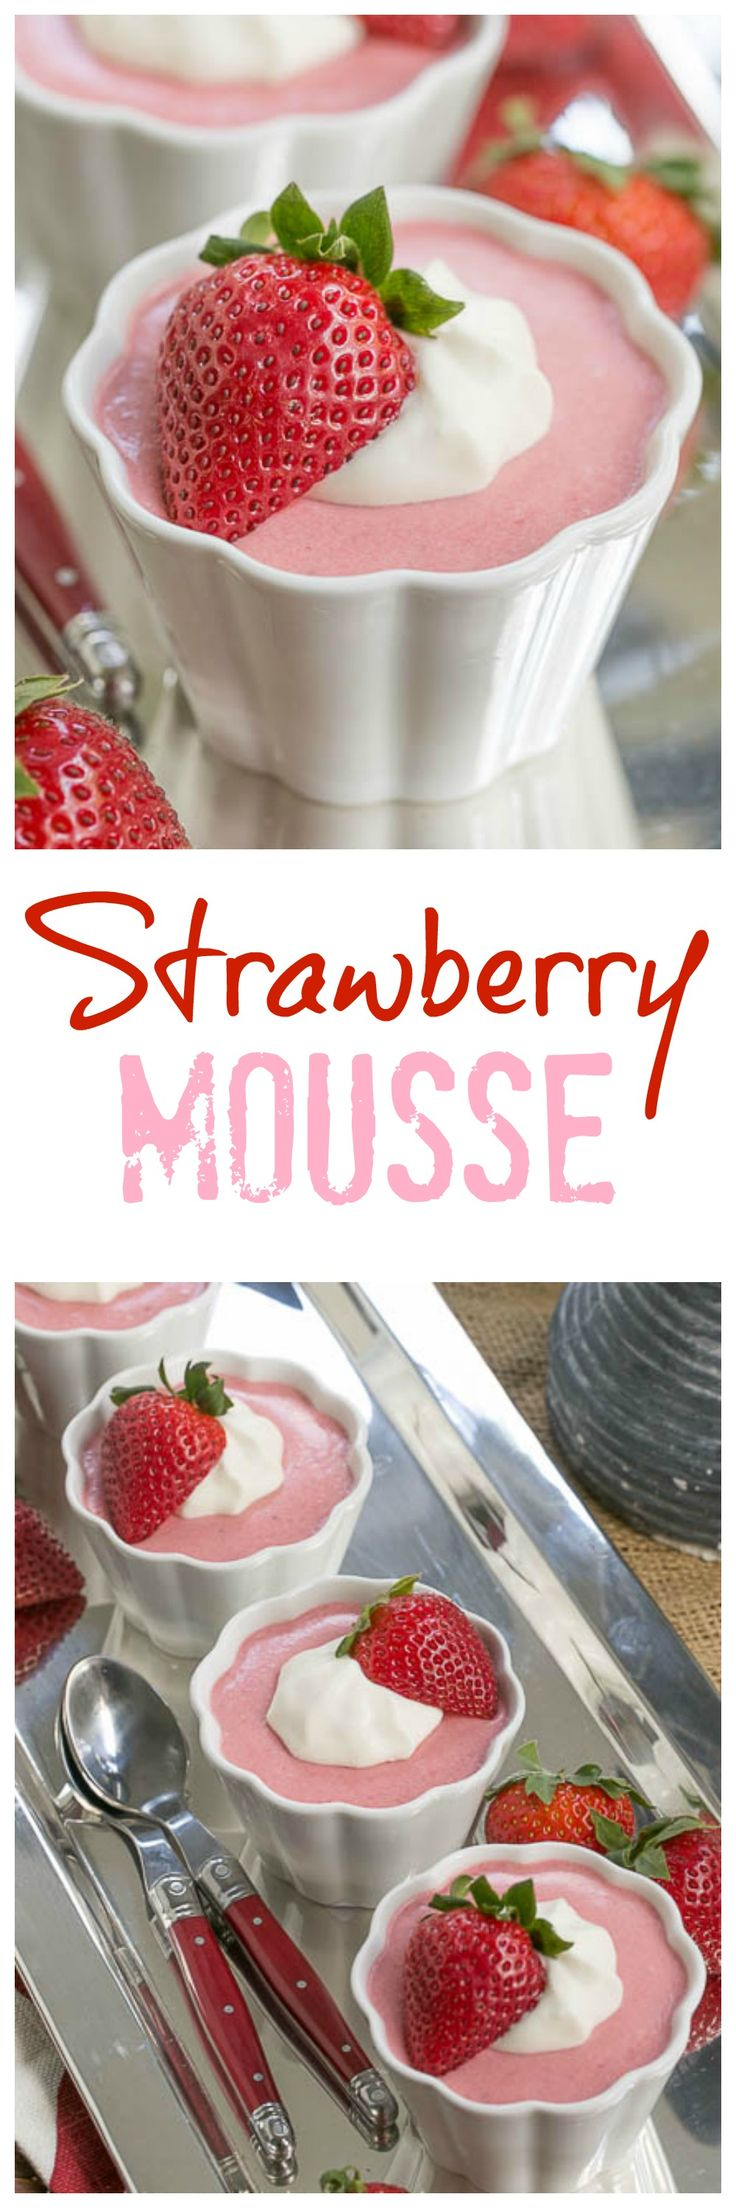 Strawberry Mousse | A sweet. creamy spring time dessert! @lizzydo